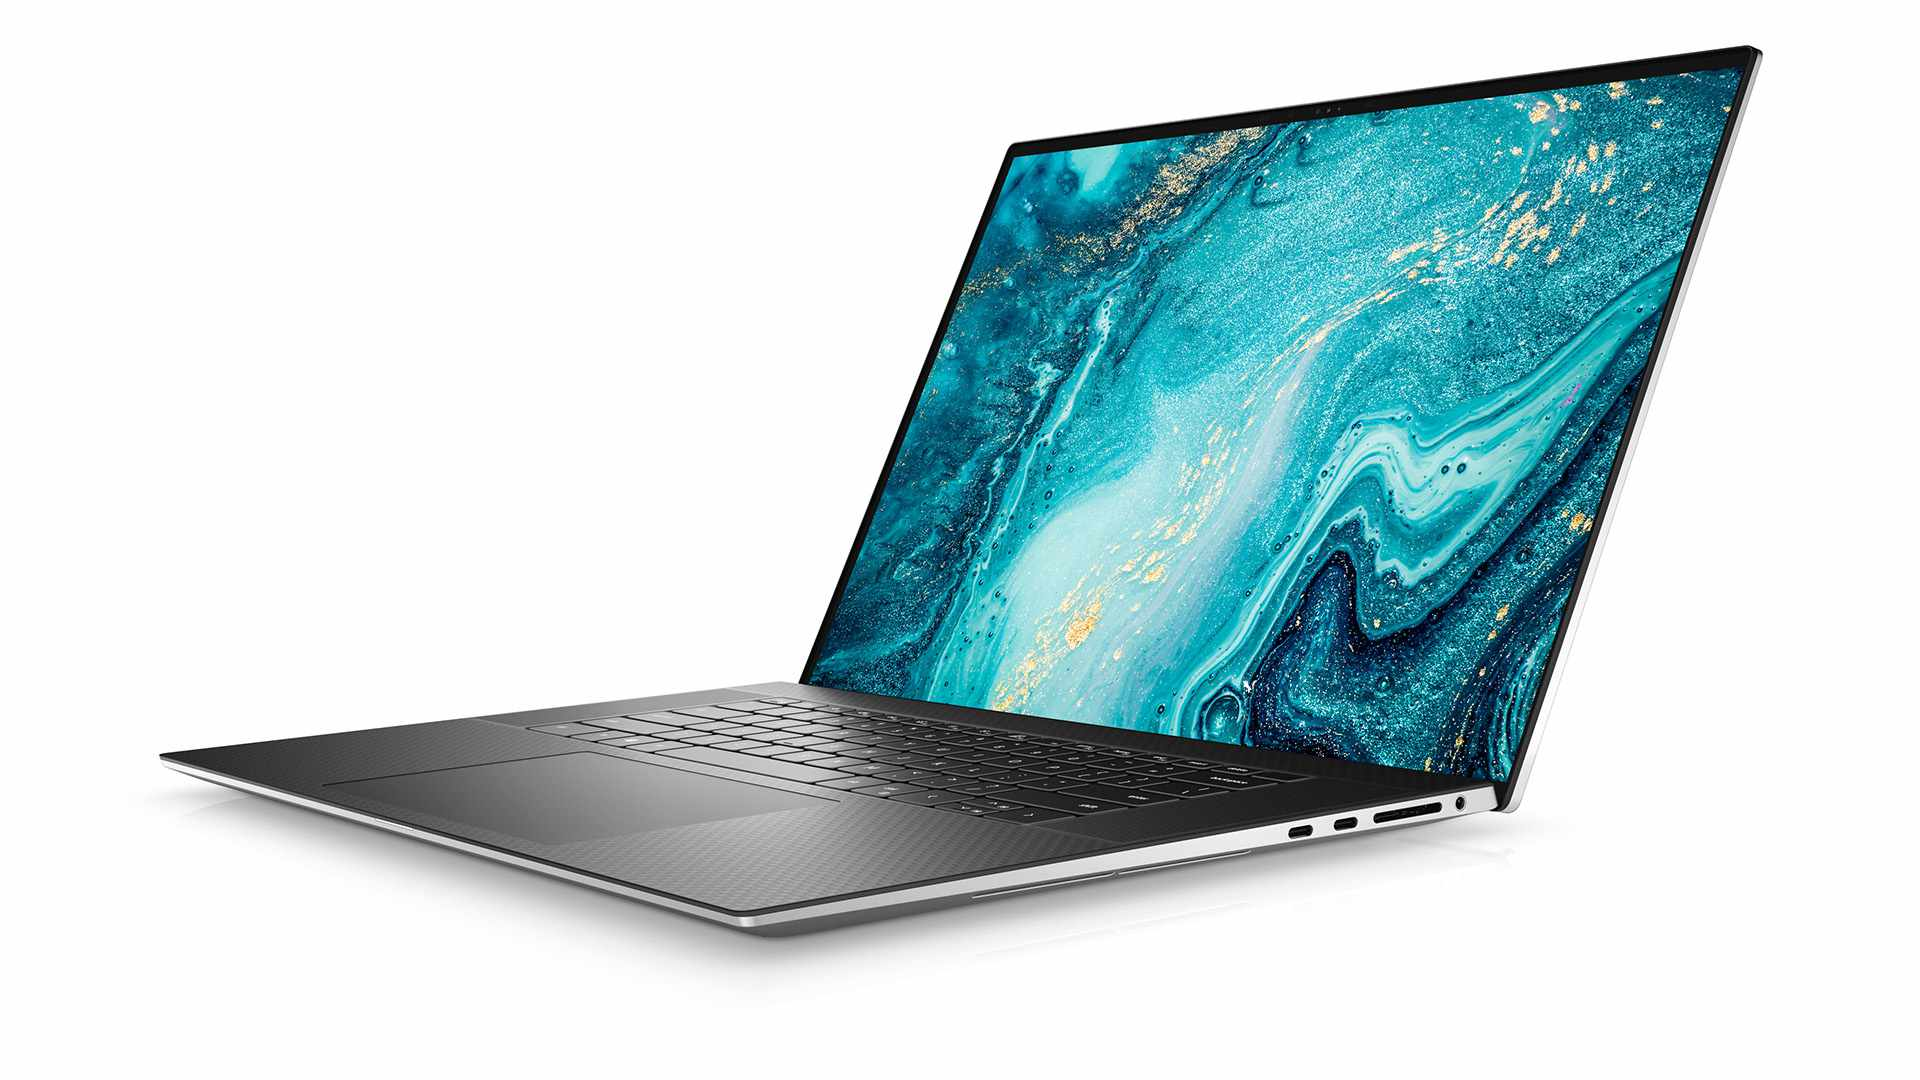 The 2021 Dell XPS 17 when viewed from an angle